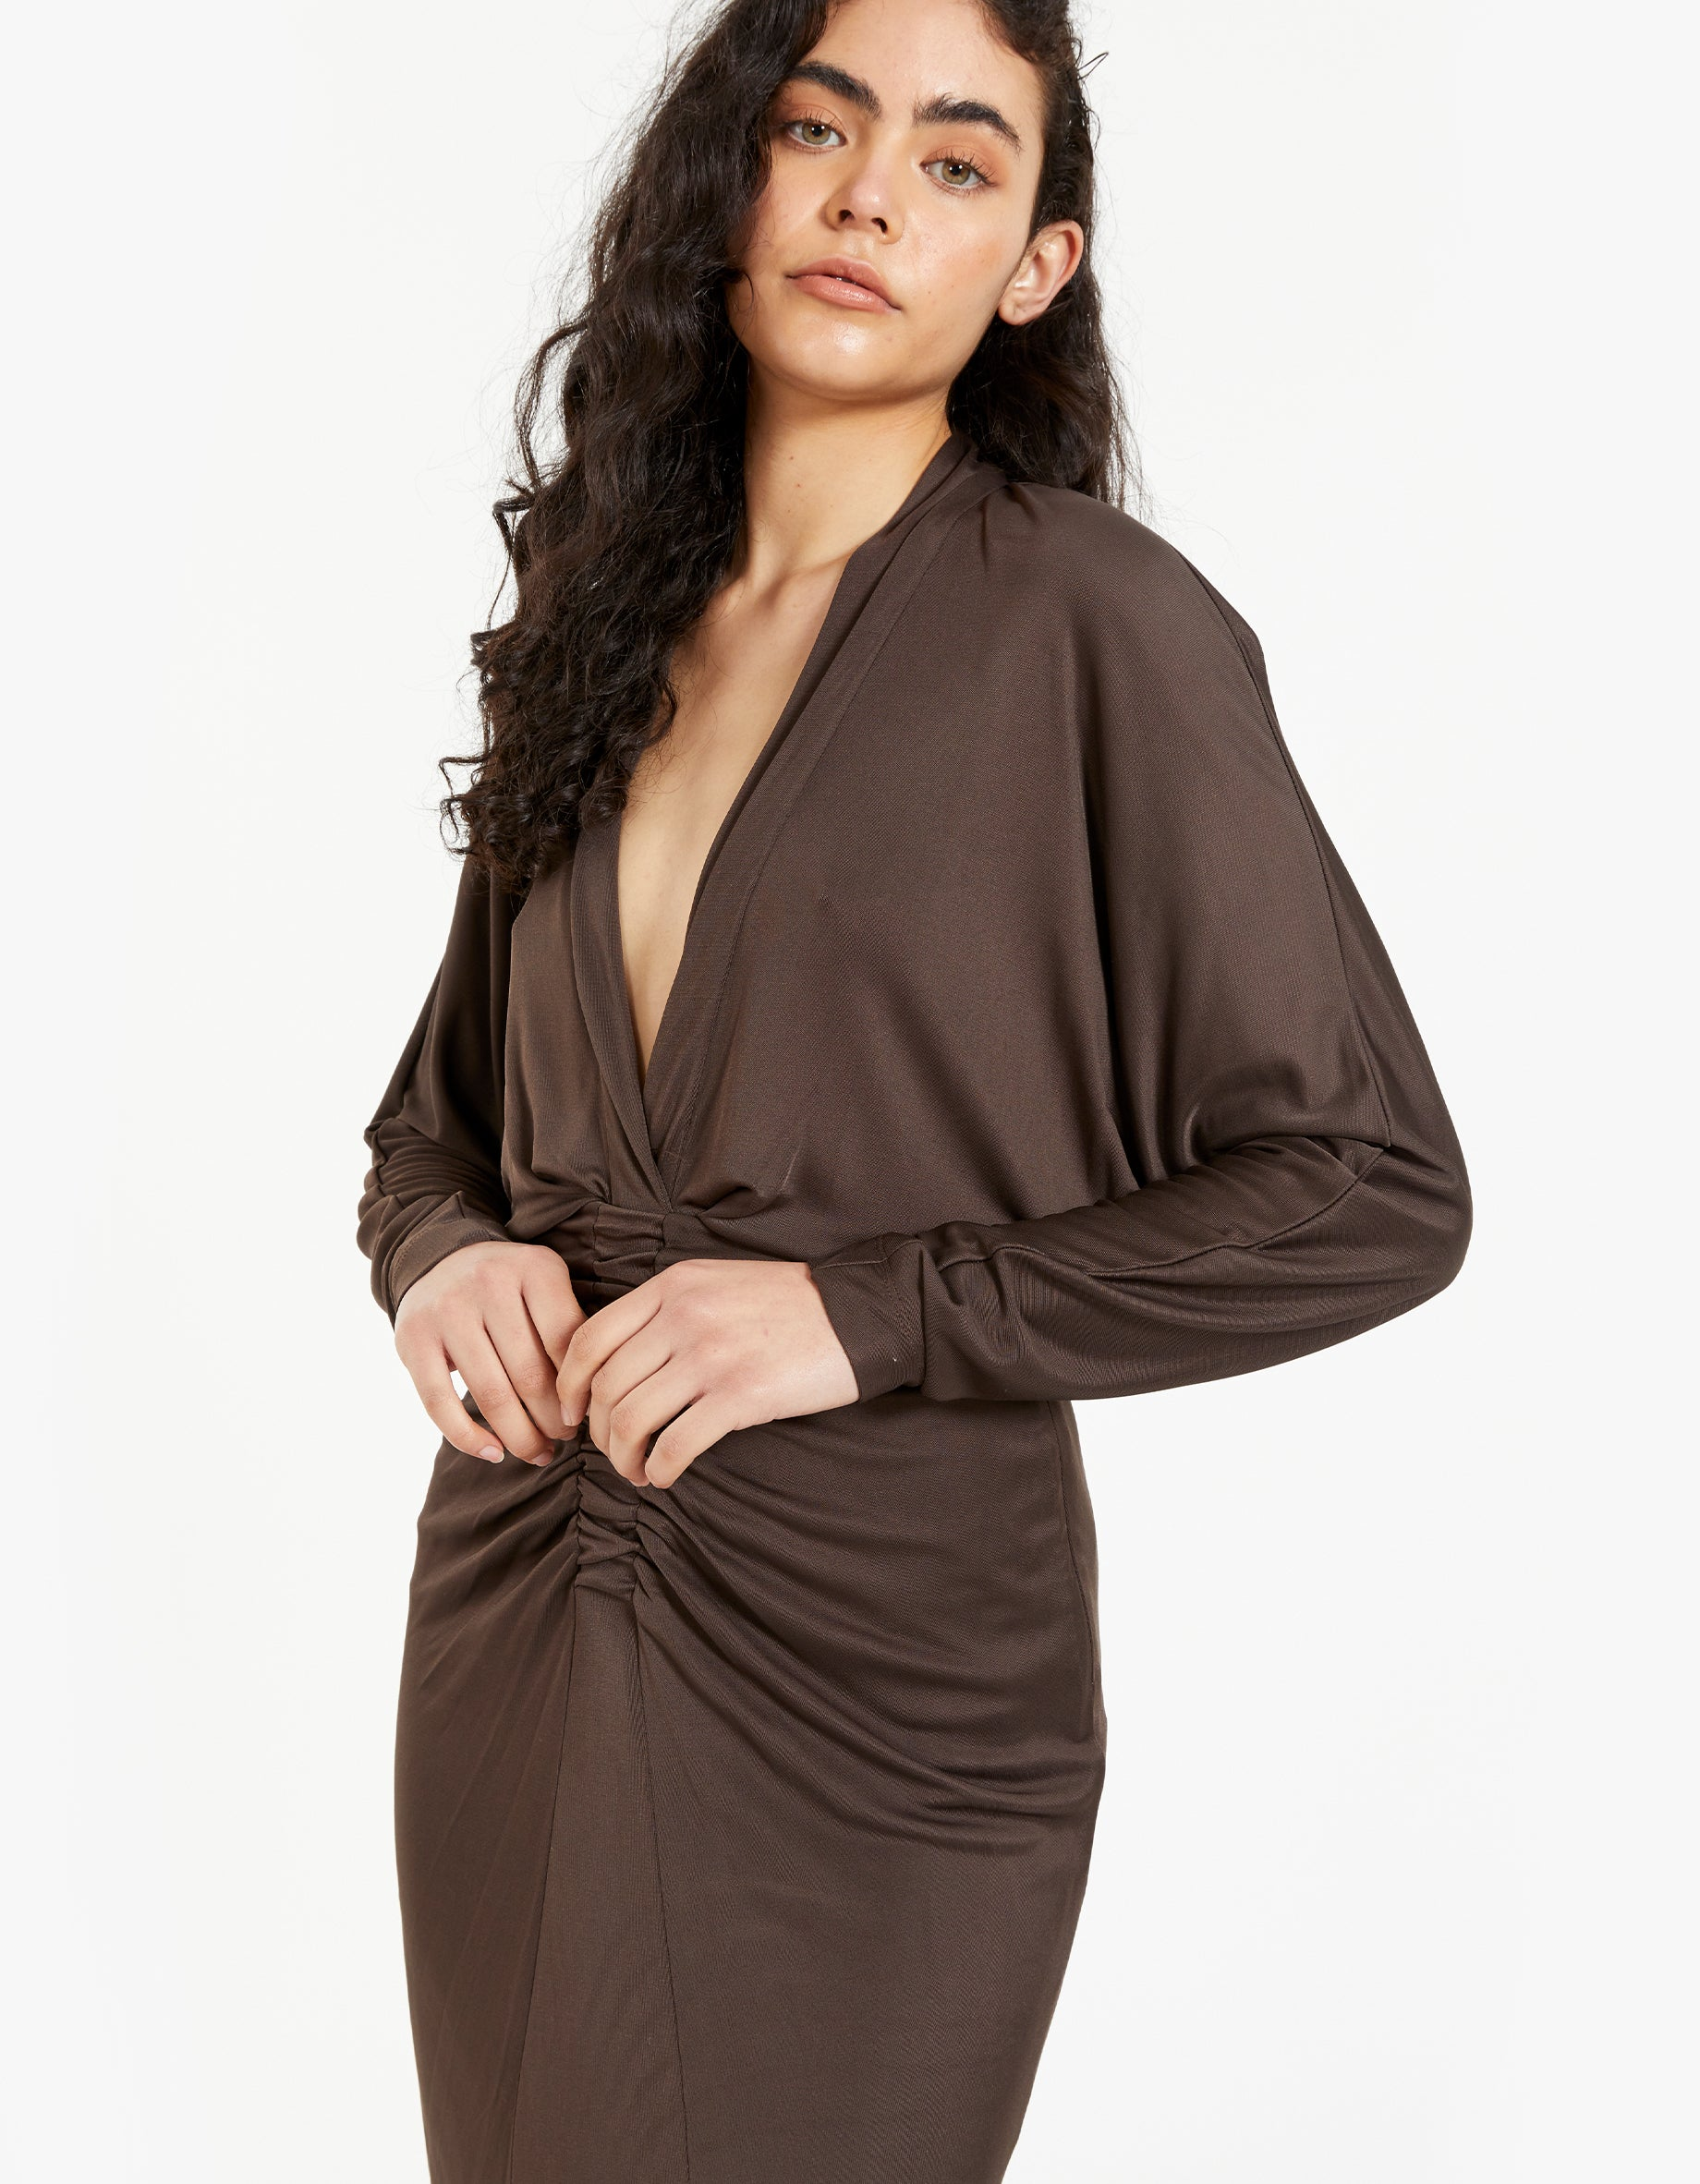 Sweet Obsession Dress - Chocolate